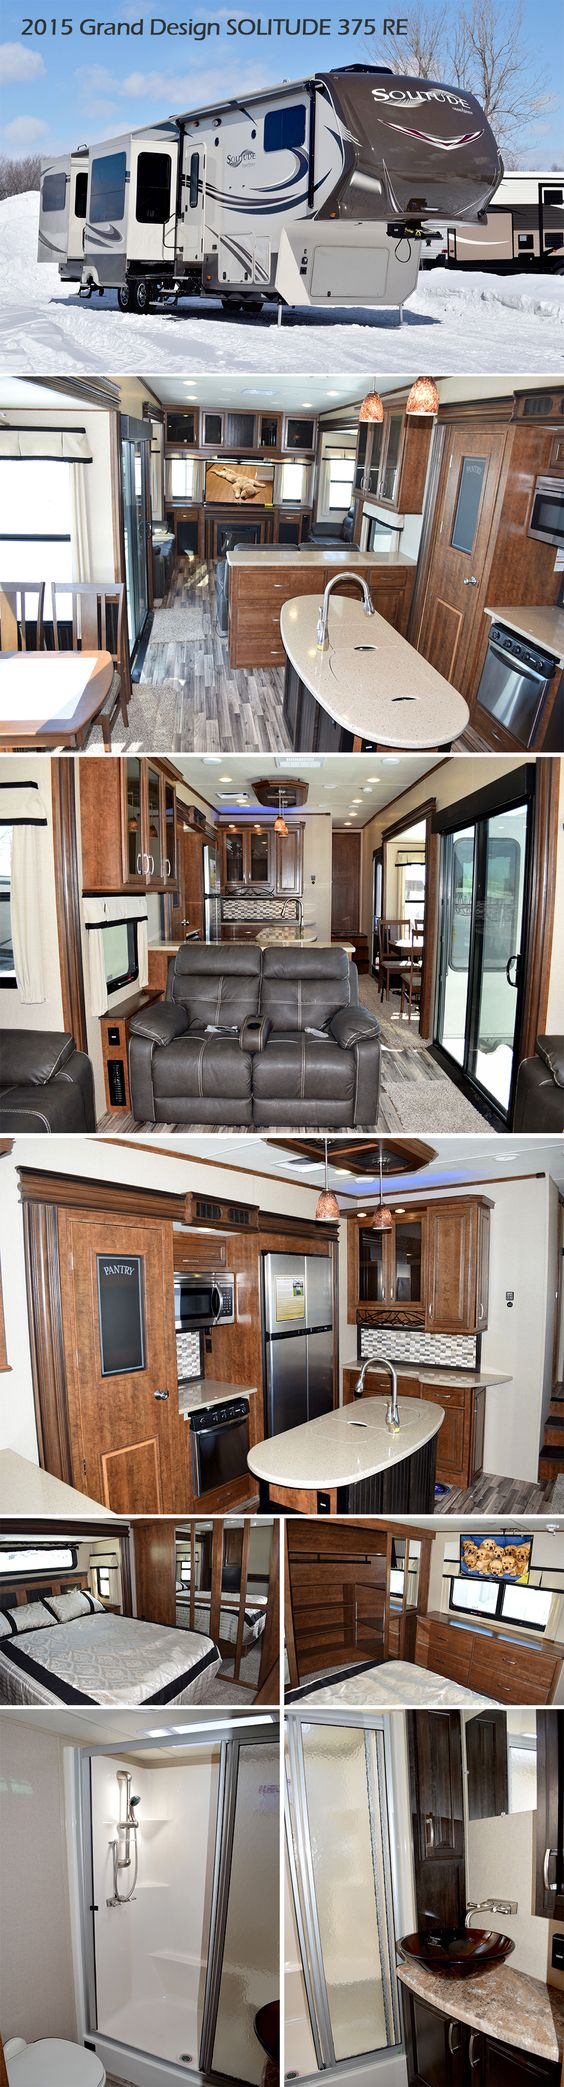 Grand design solitude problems - 2014 Drv Tradition 390 Luxury Front Living Room 5th Wheel 5 Slides Fully Loaded Rv For Sale By Owner 91 900 Www Helpsellmyrv Com Louisville